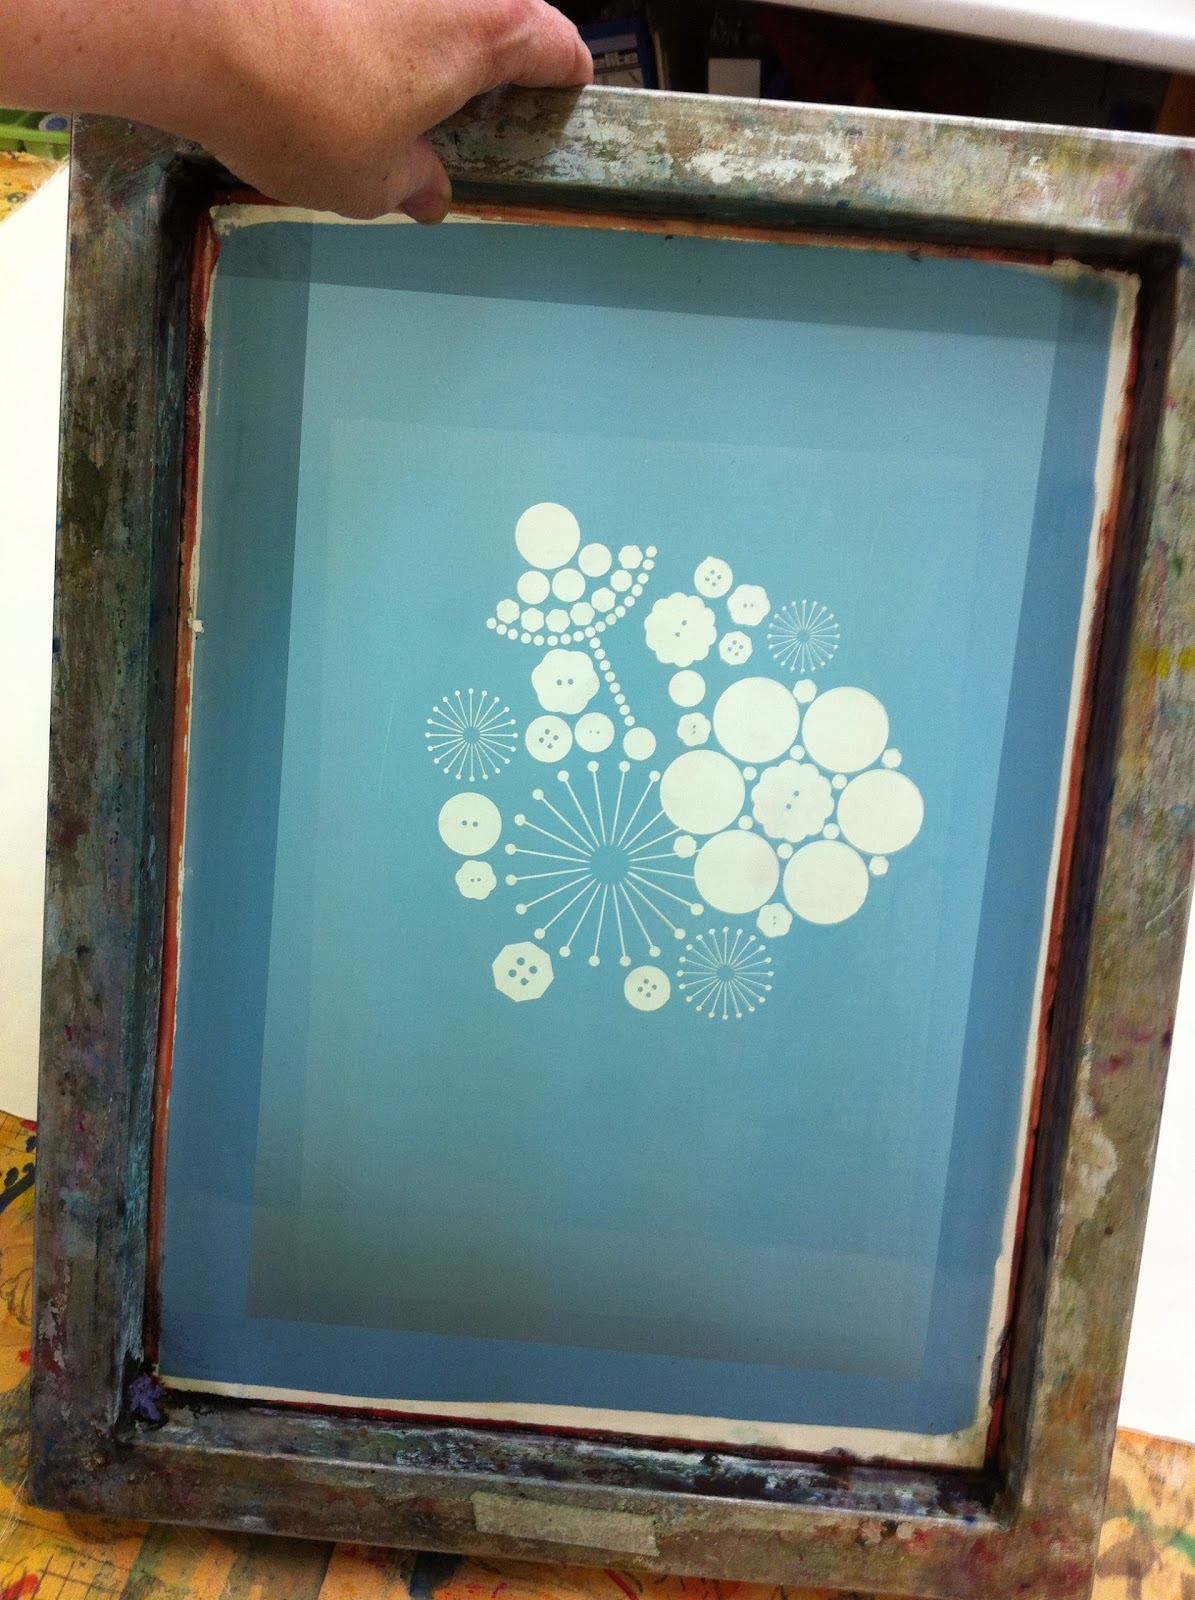 Silk Screen Screens : Bonkers about buttons silk screen printing course rd week